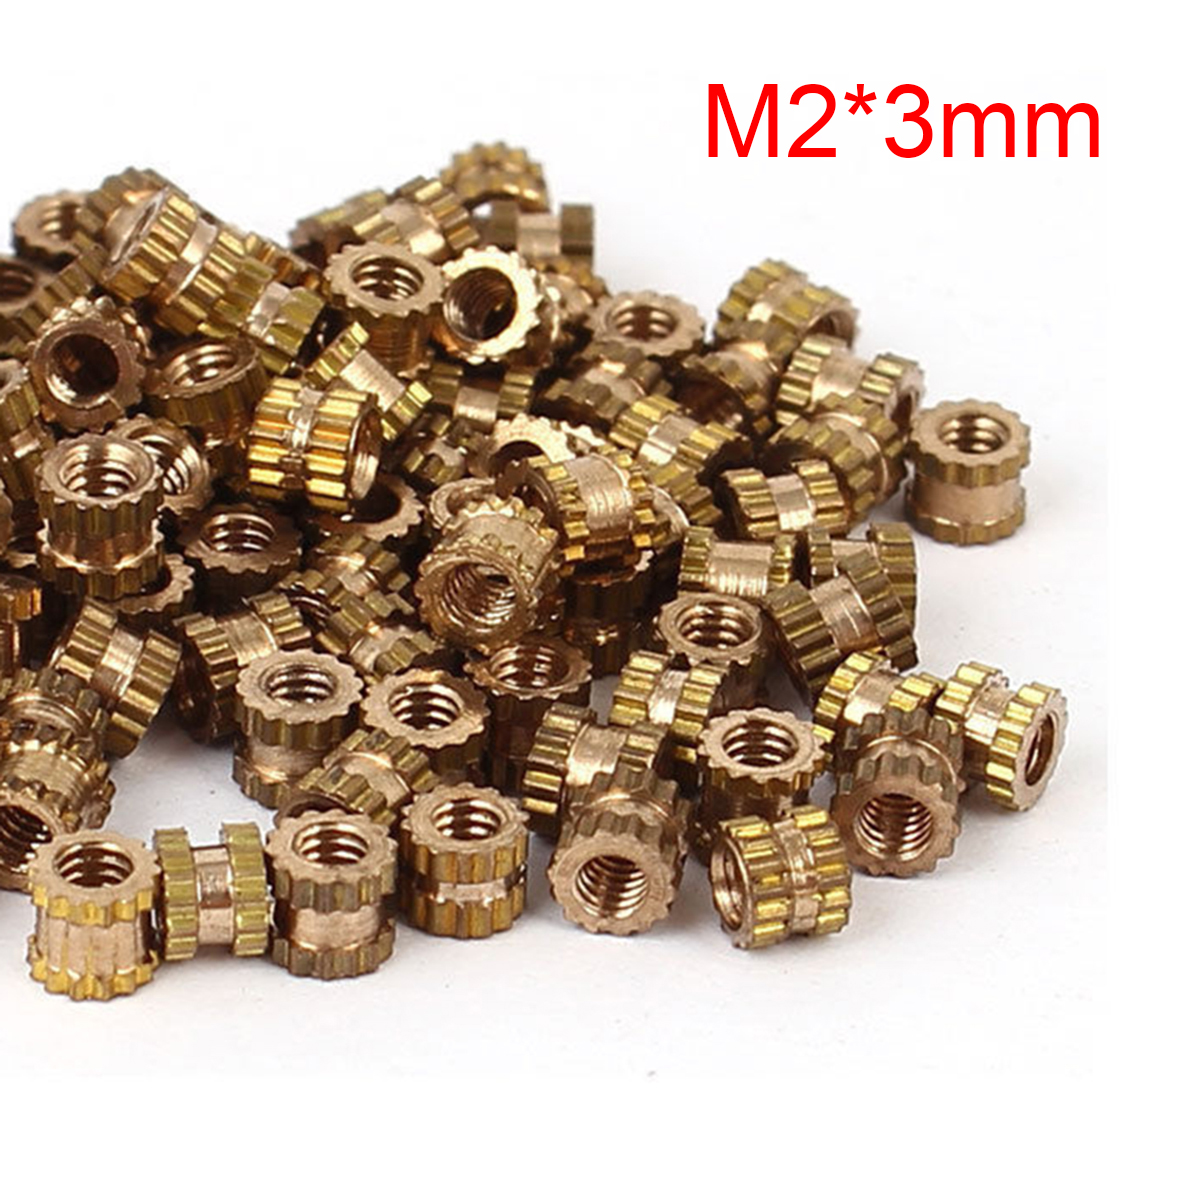 100pcs <font><b>M2x3mm</b></font> Brass Cylinder Knurled Threaded Round Insert Embedded Nuts OD 3.2mm Mayitr image